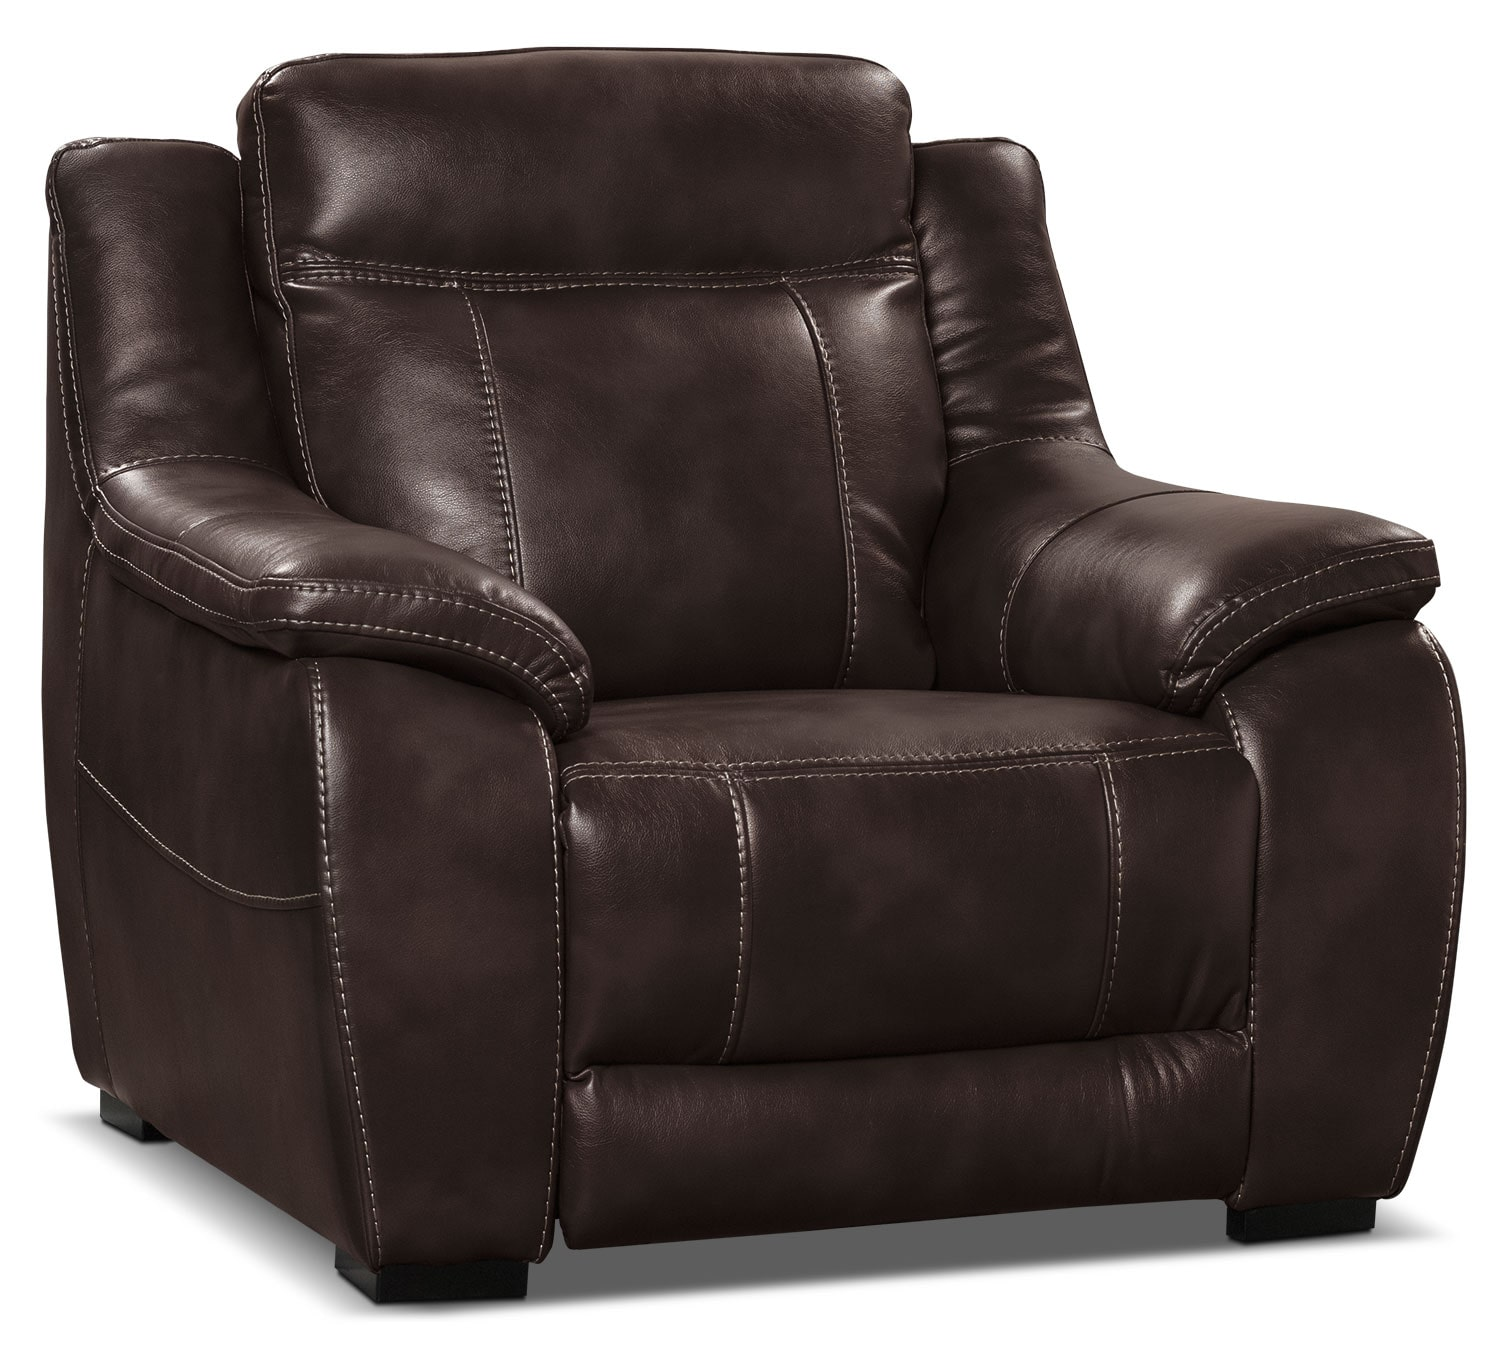 Living Room Furniture - Novo Leather-Look Fabric Chair – Brown